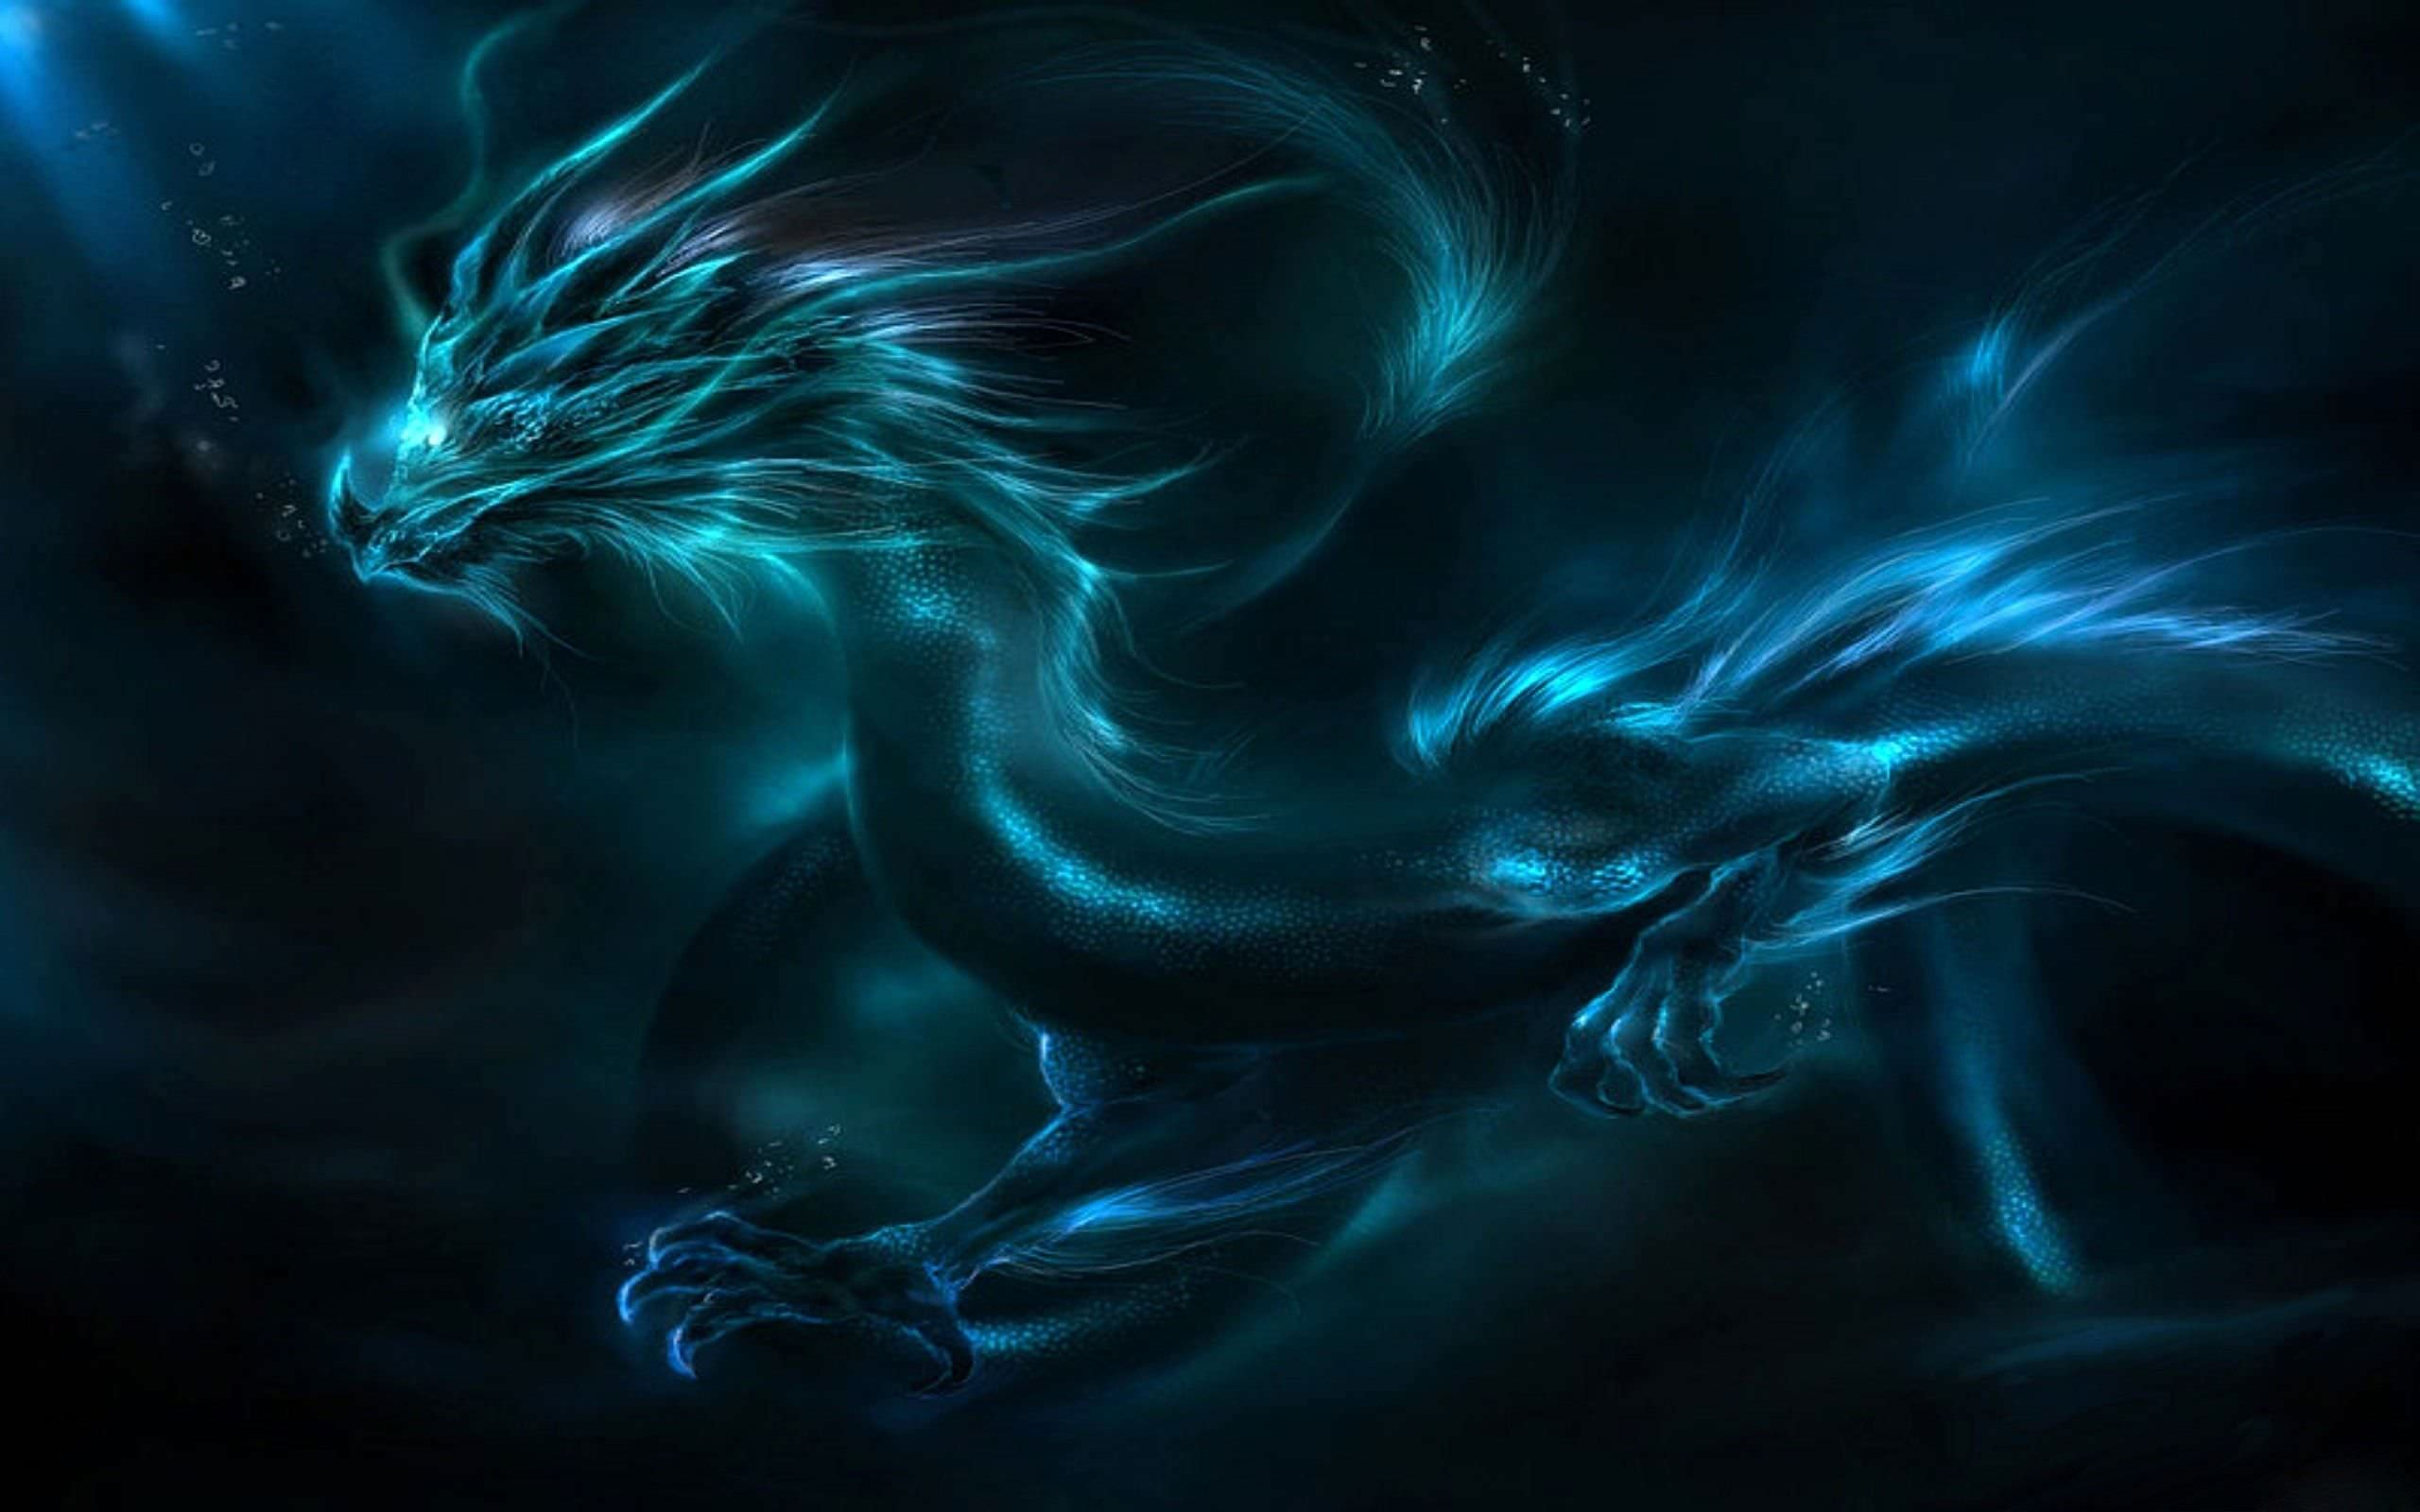 3d Wallpaper Decor : Dragon wallpapers backgrounds images pictures